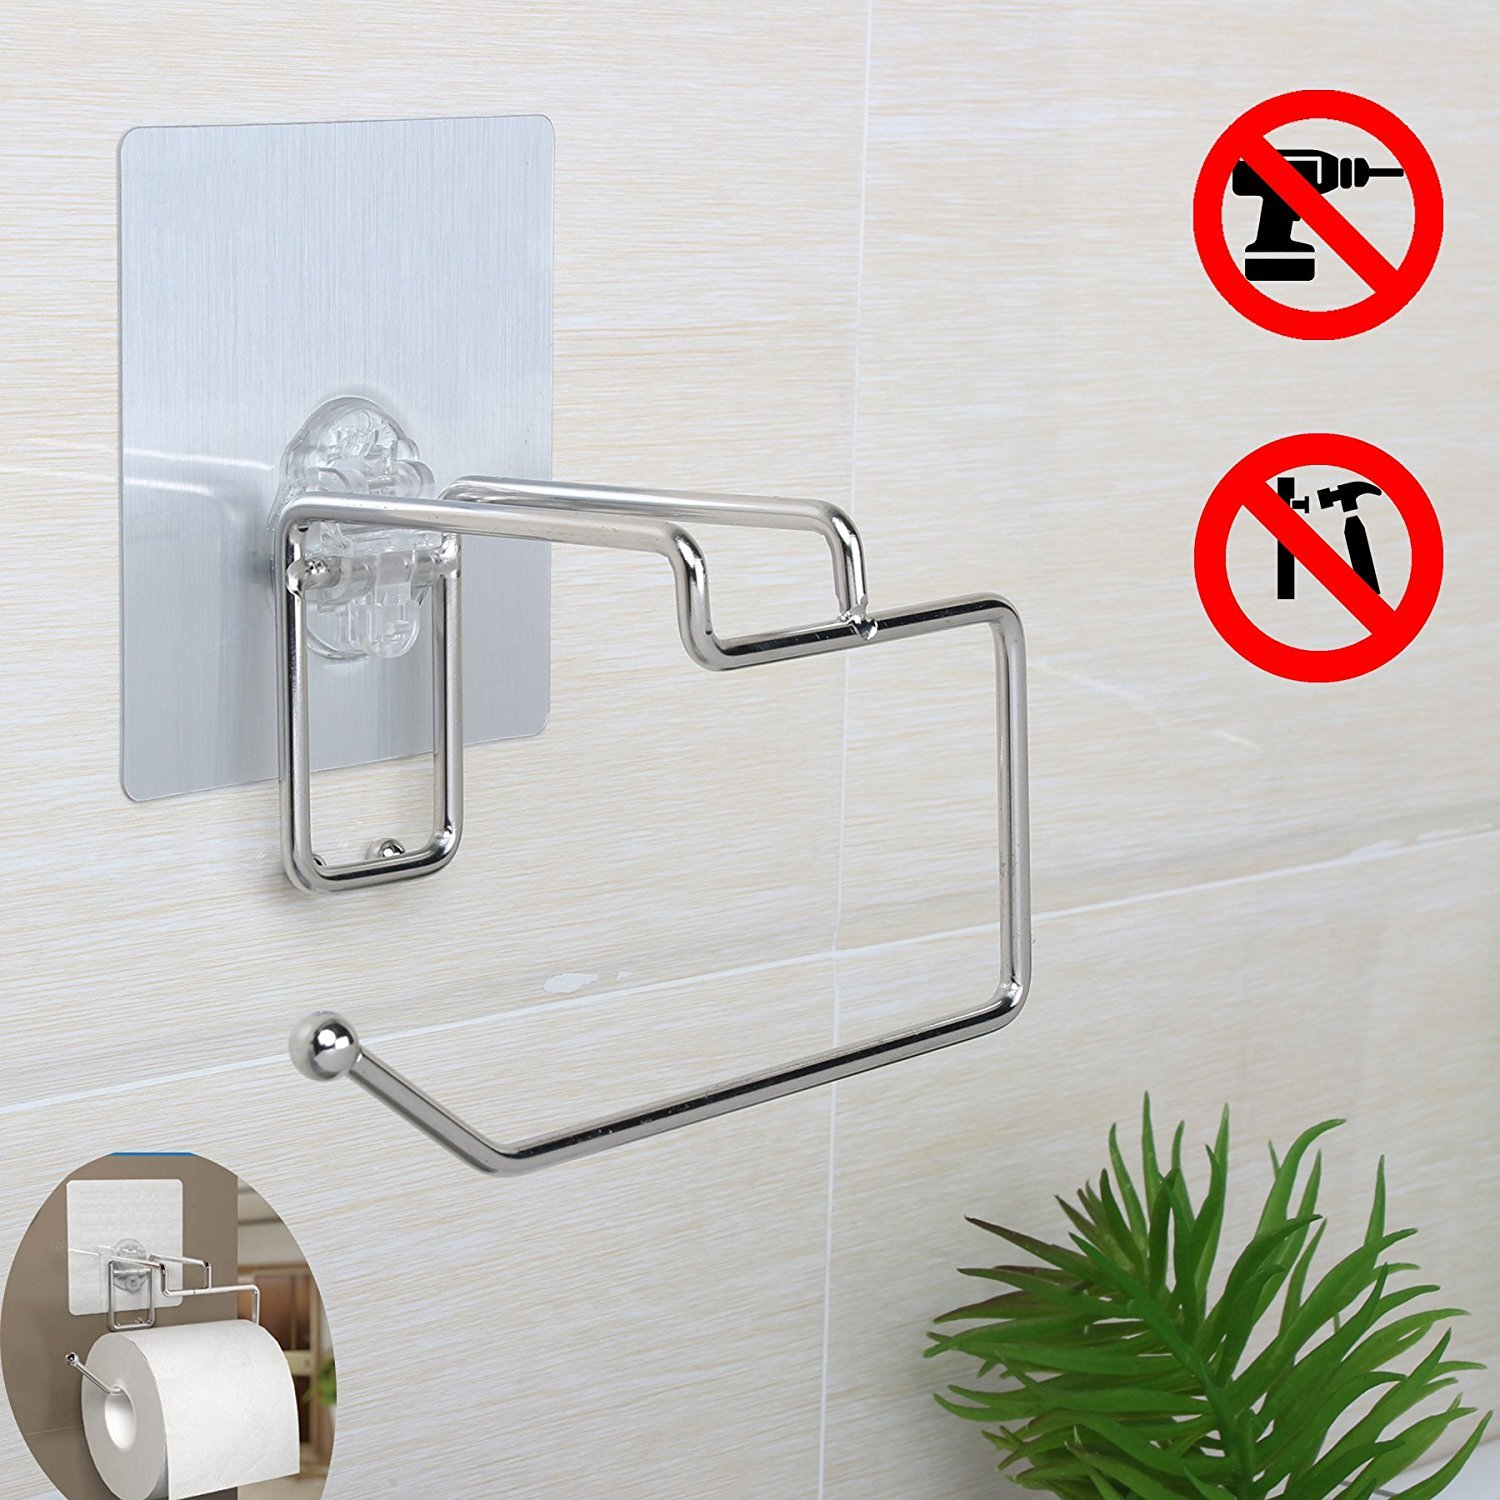 Amazoncom Self Adhesive Wall Mounted Toilet Paper Tissue Holder